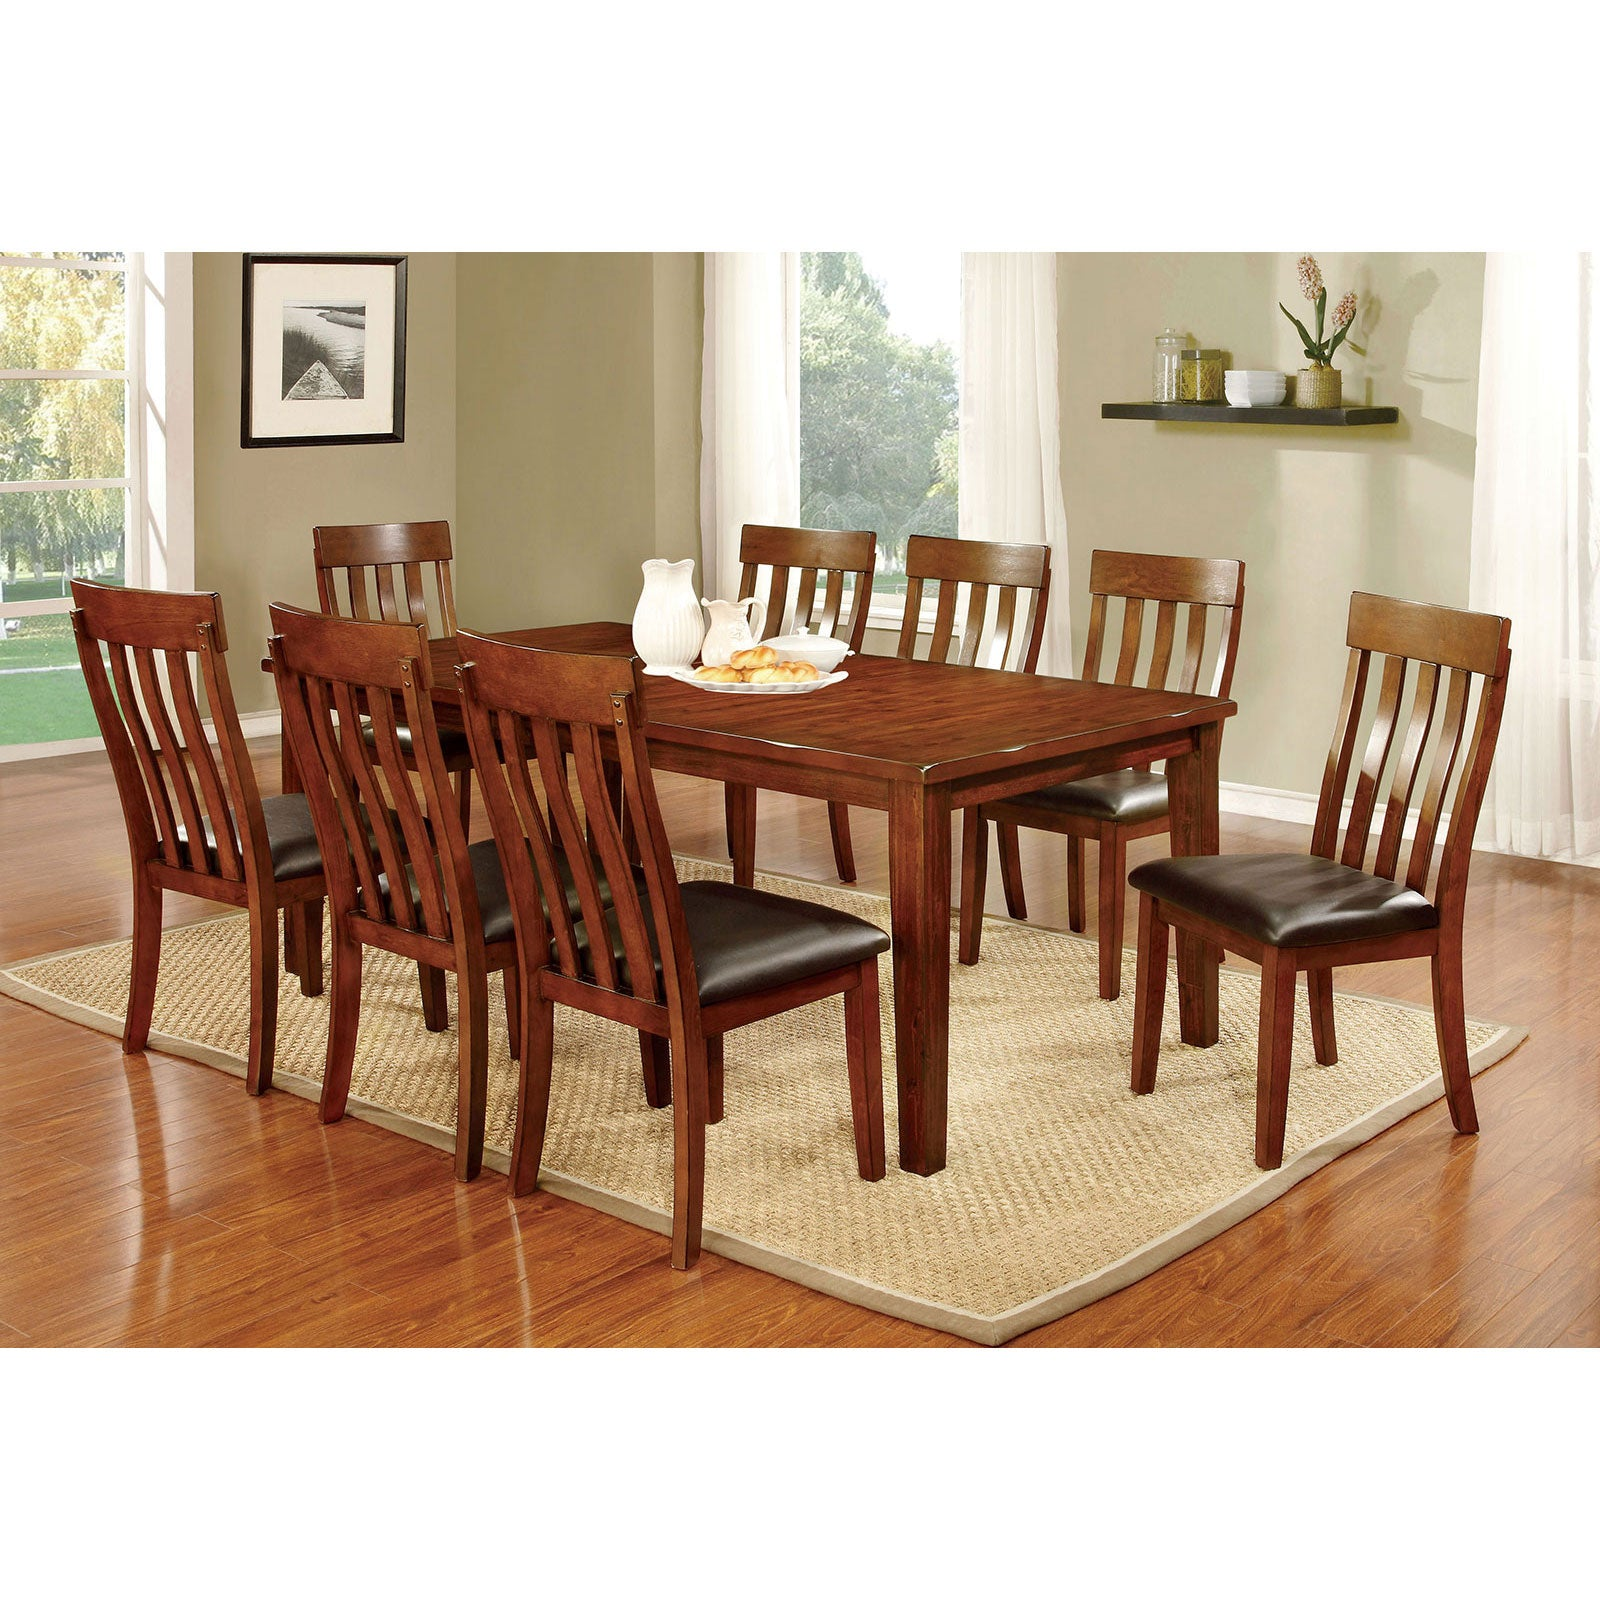 FOXVILLE 9 Pc. Dining Table Set - InteriorDesignsToGo.com